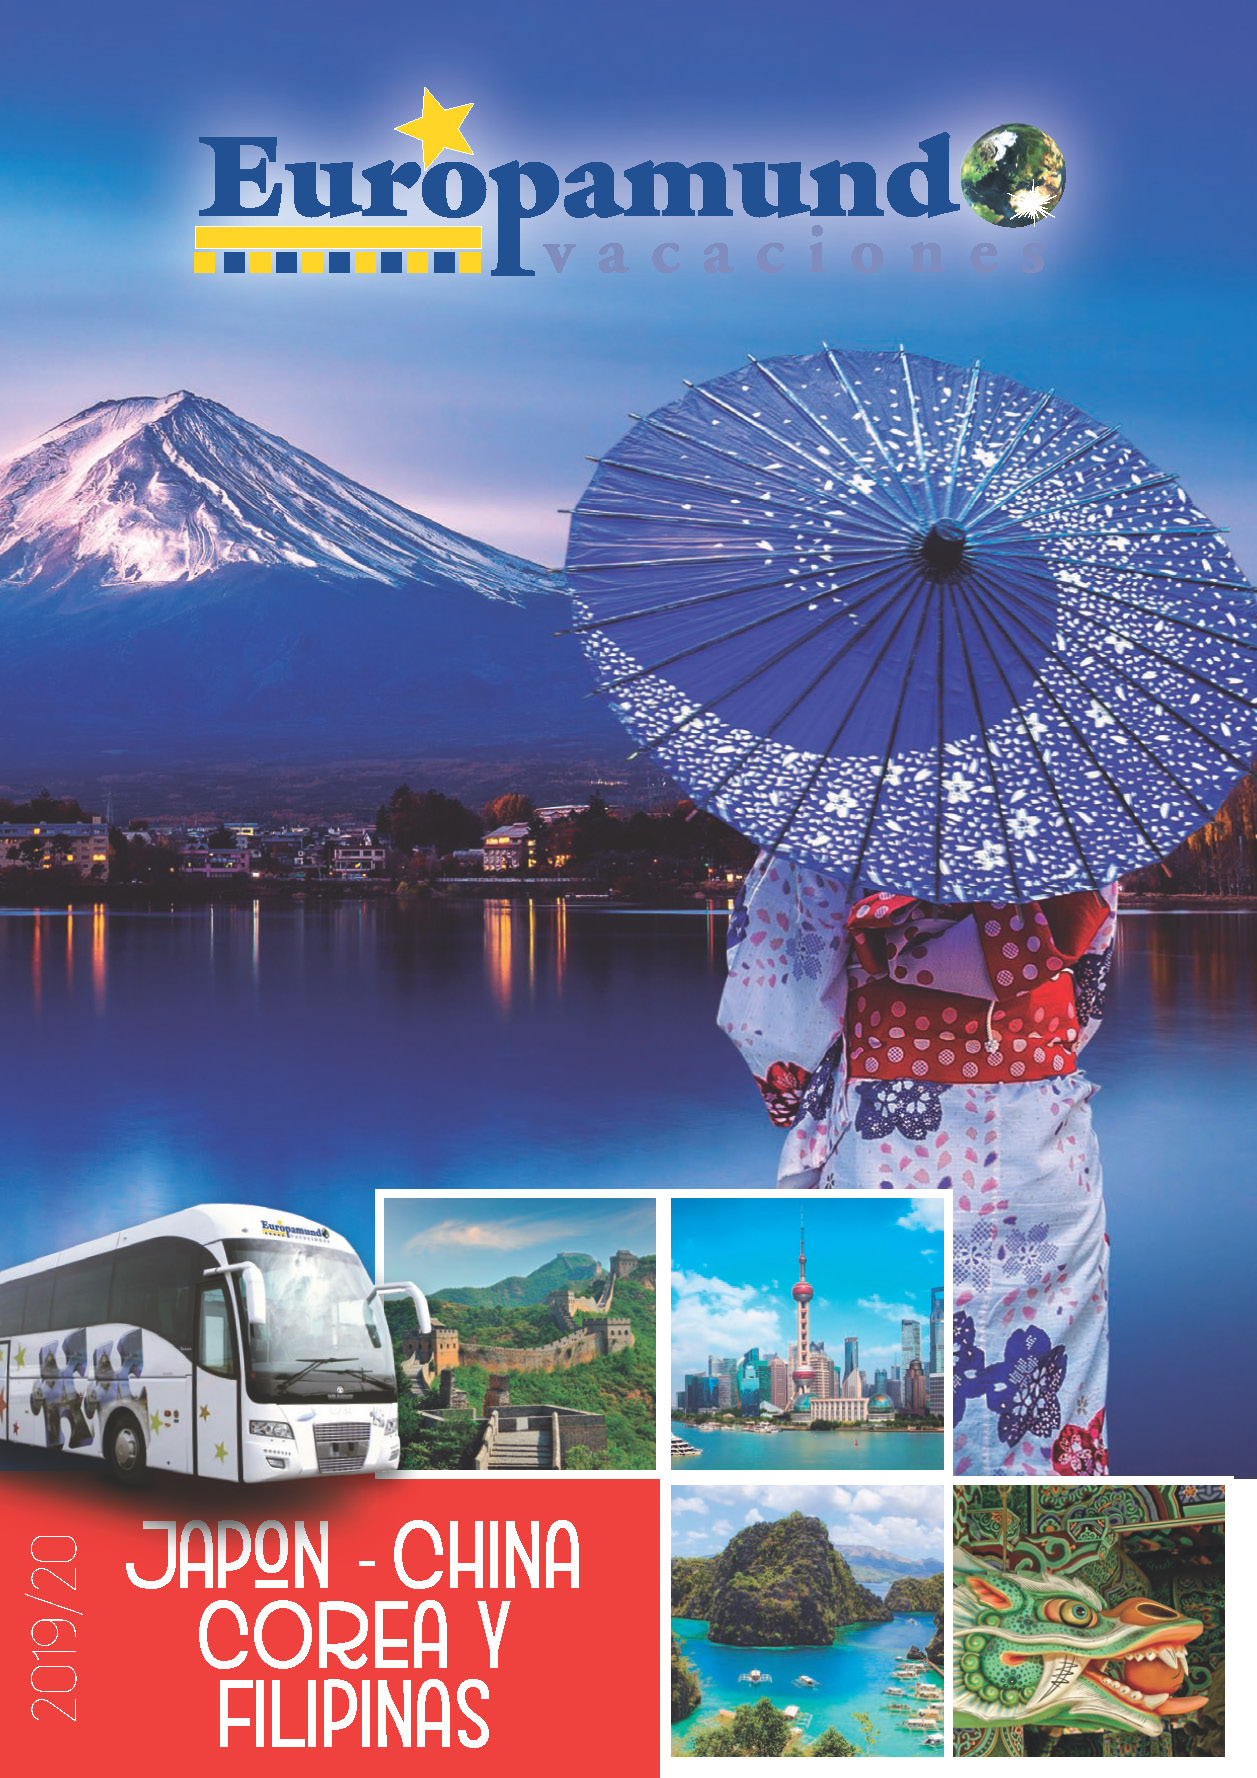 Catalogo Europamundo Japon China Corea y Filipinas 2019 2